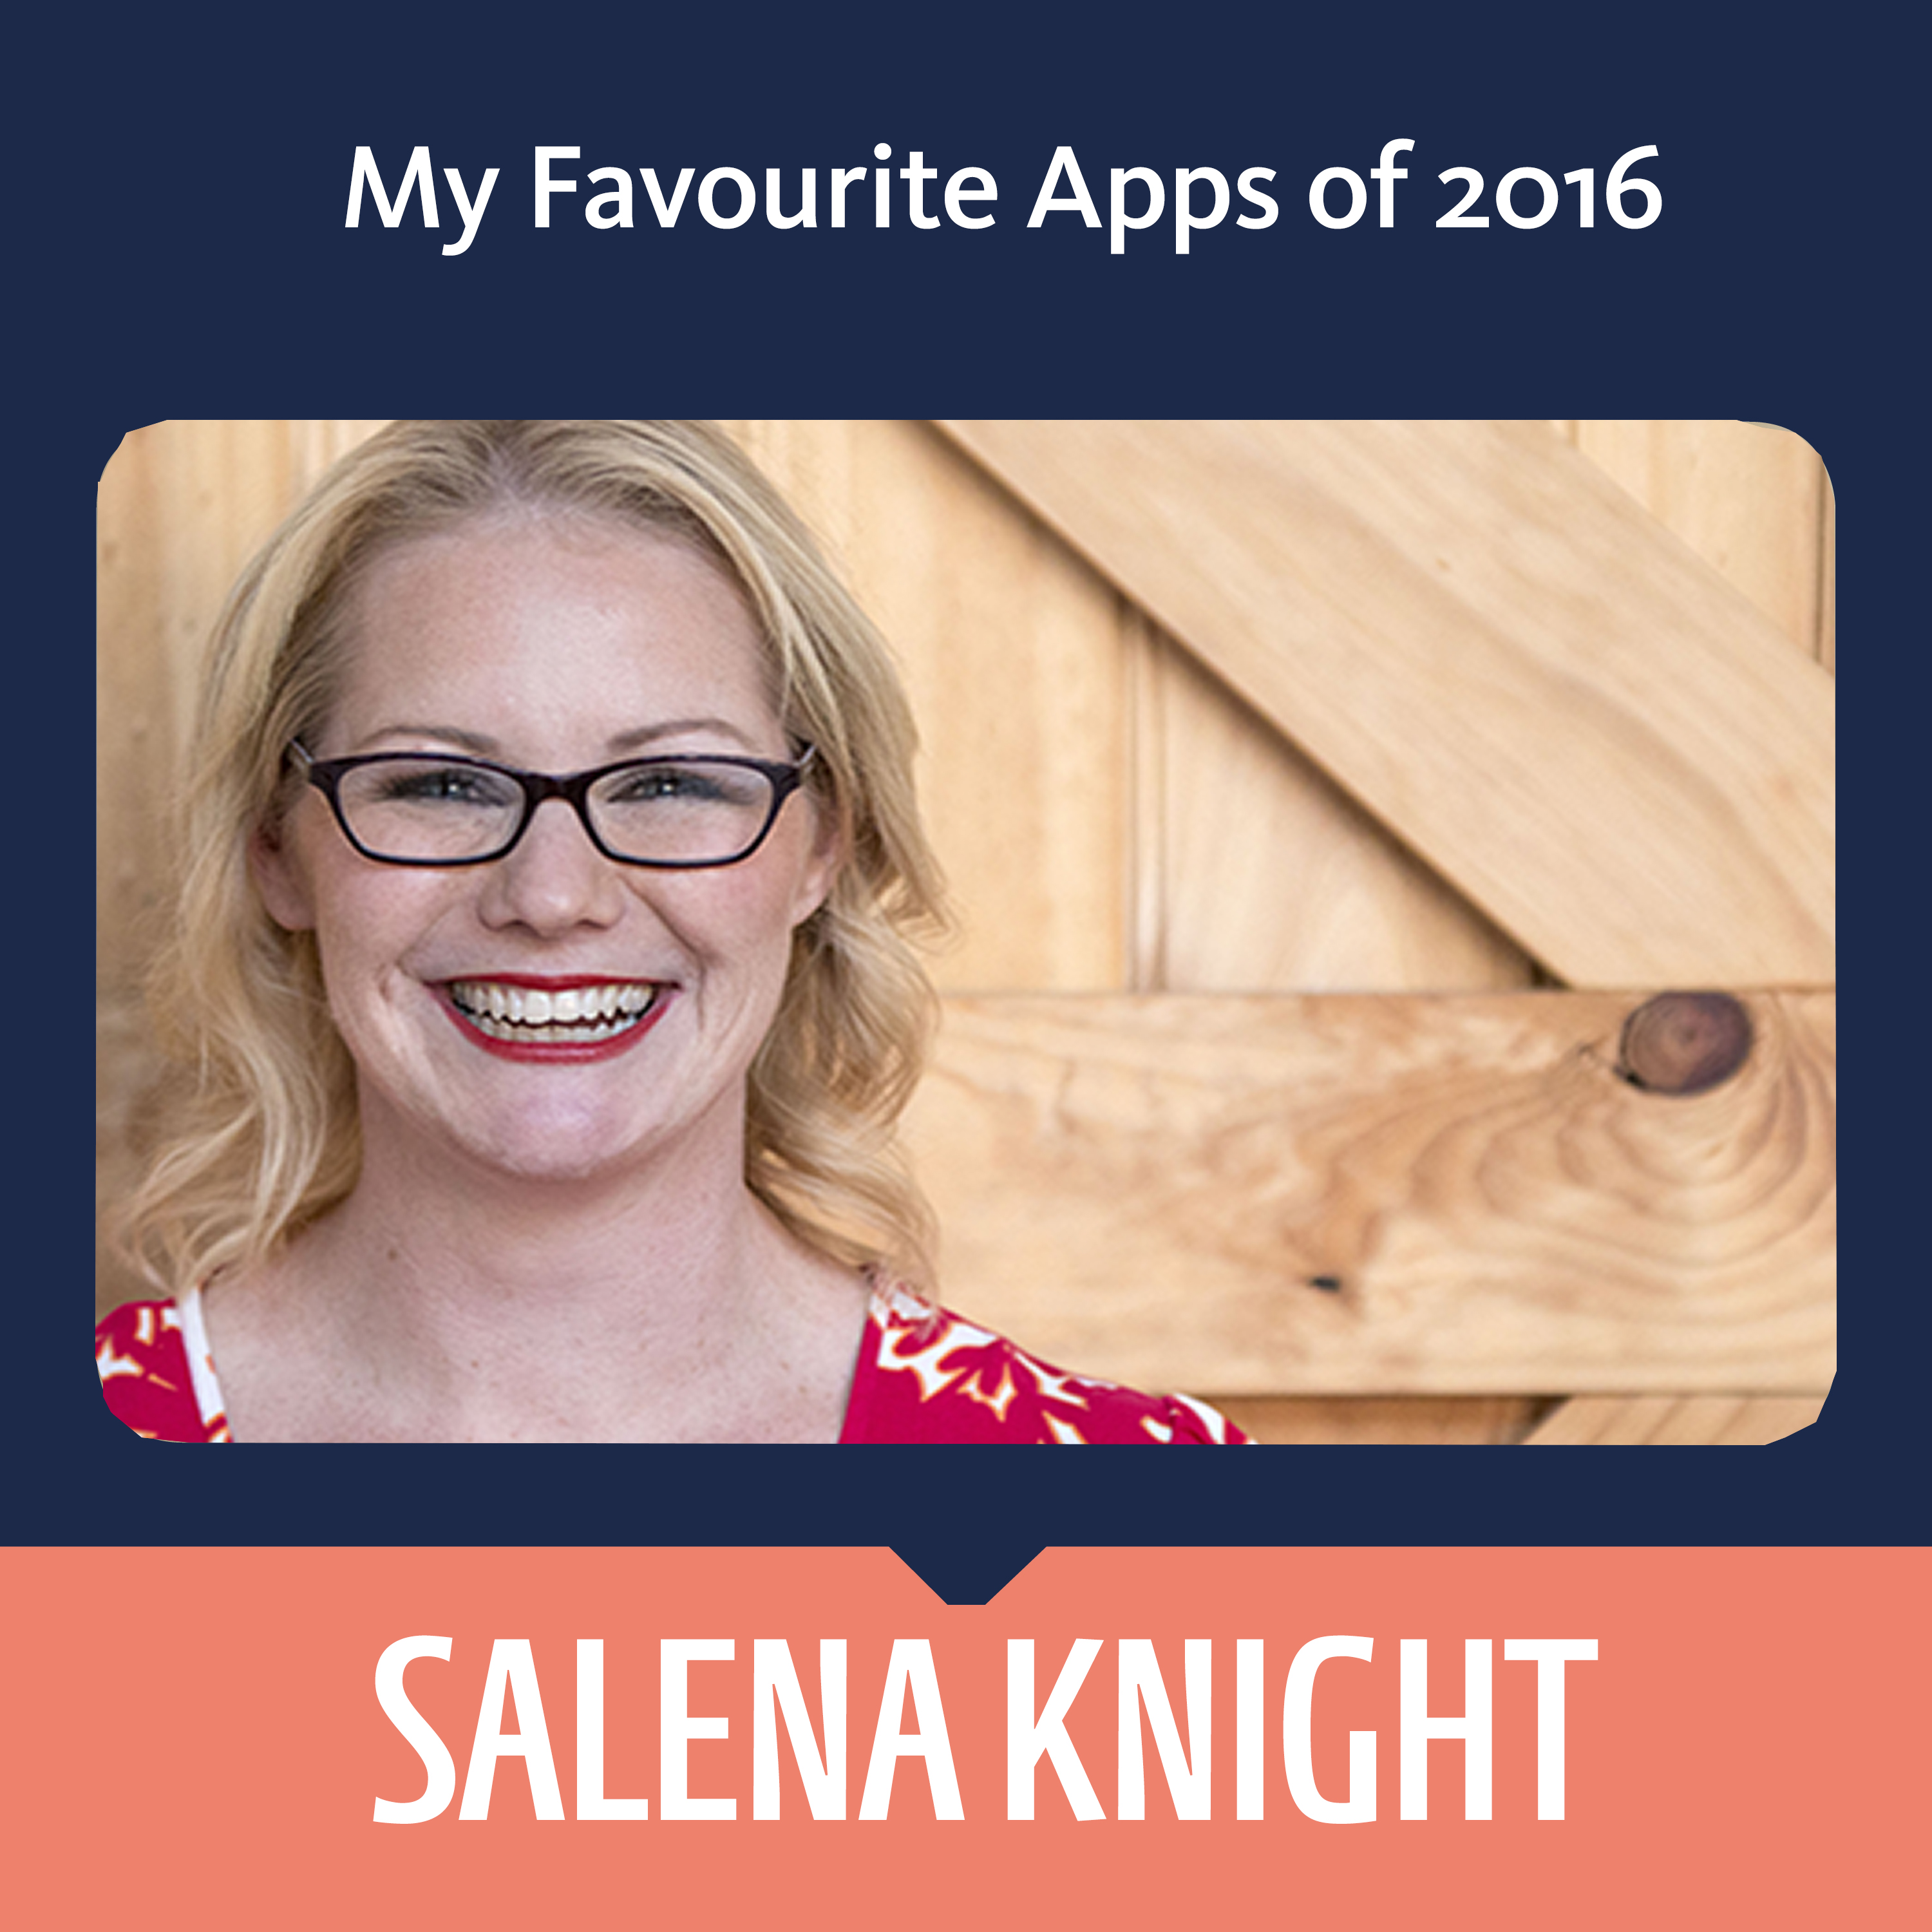 My Favourite Apps of 2016